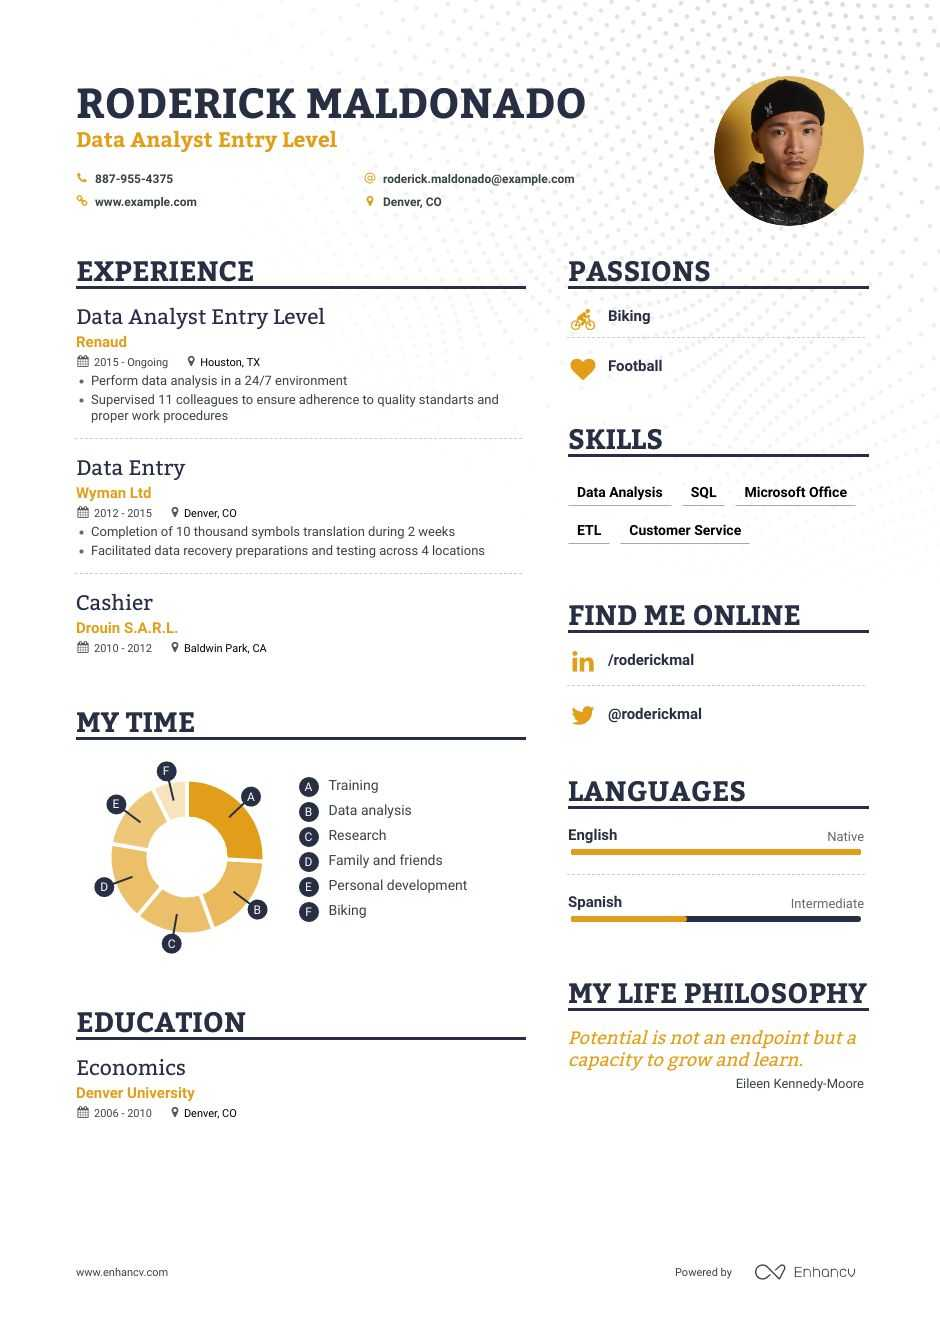 data analyst entry level resume examples inside to tips enhancv best format for college Resume Best Resume Format For Data Analyst